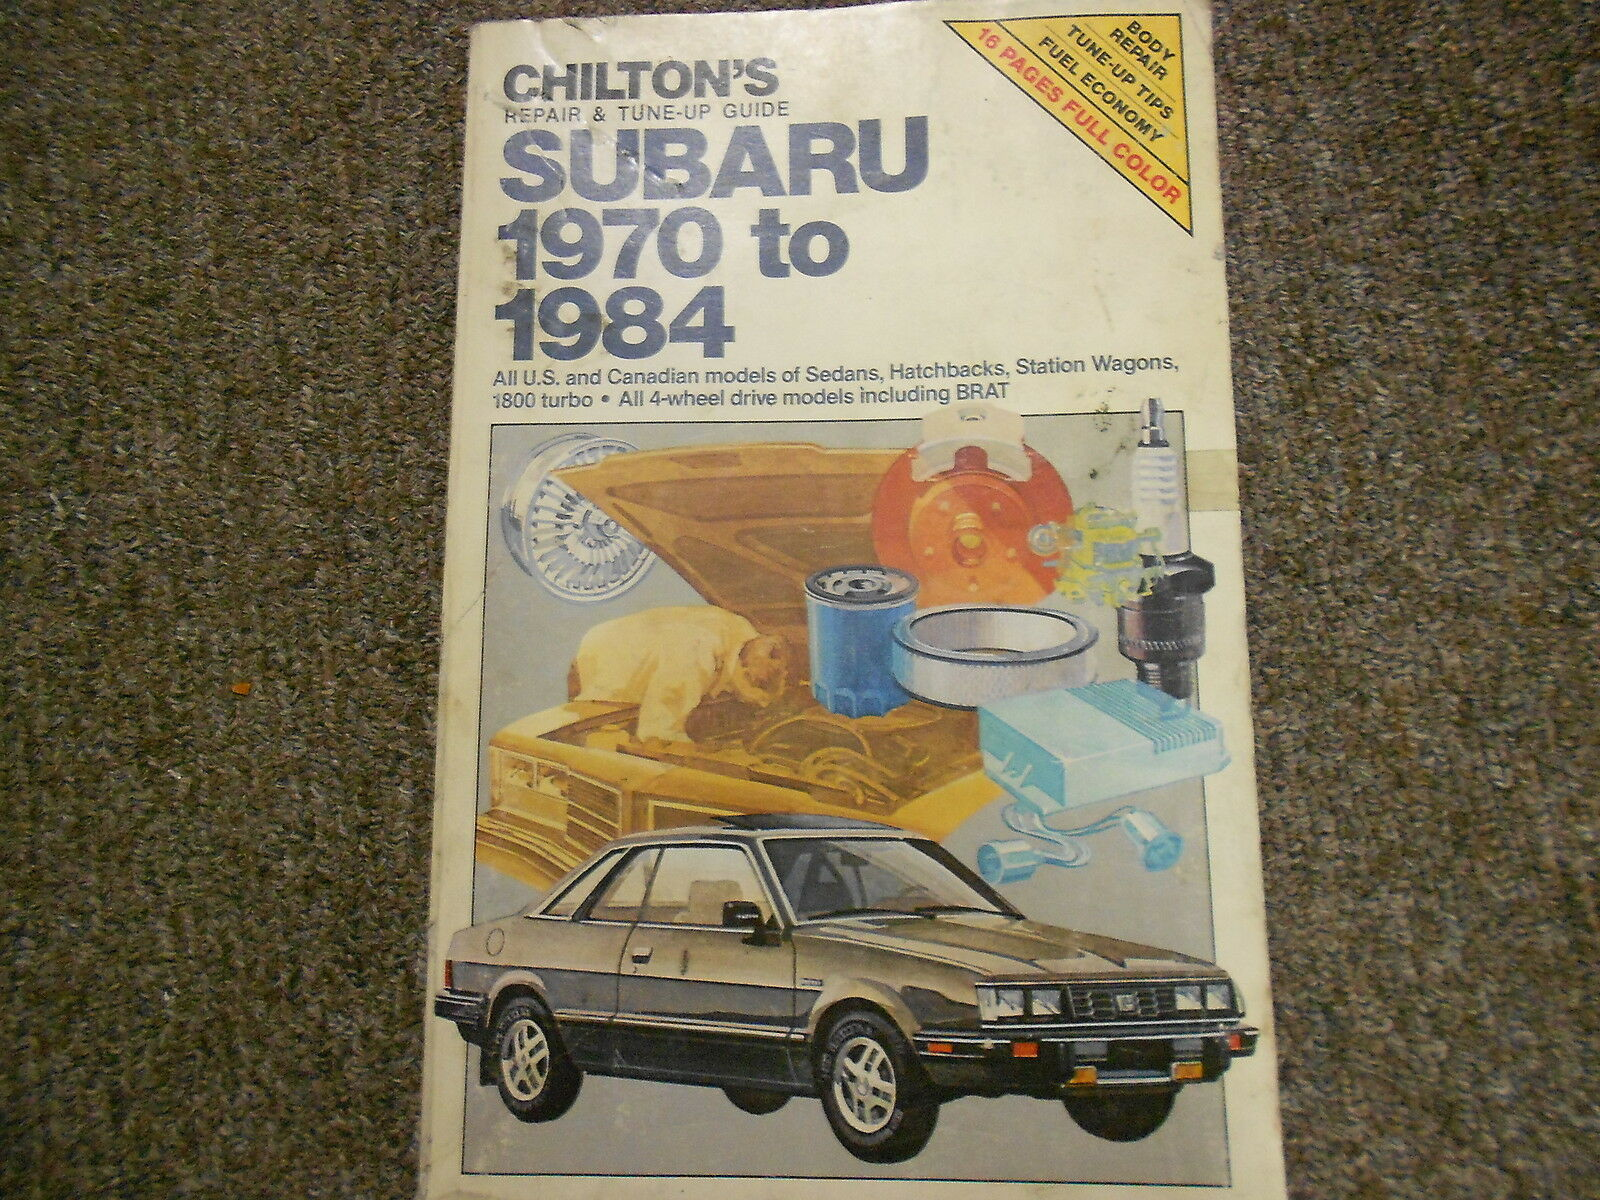 1970 1984 Subaru Tune Up Service Repair Shop Manual FACTORY OEM BOOK 71 74  77 80 1 of 1Only 1 available ...